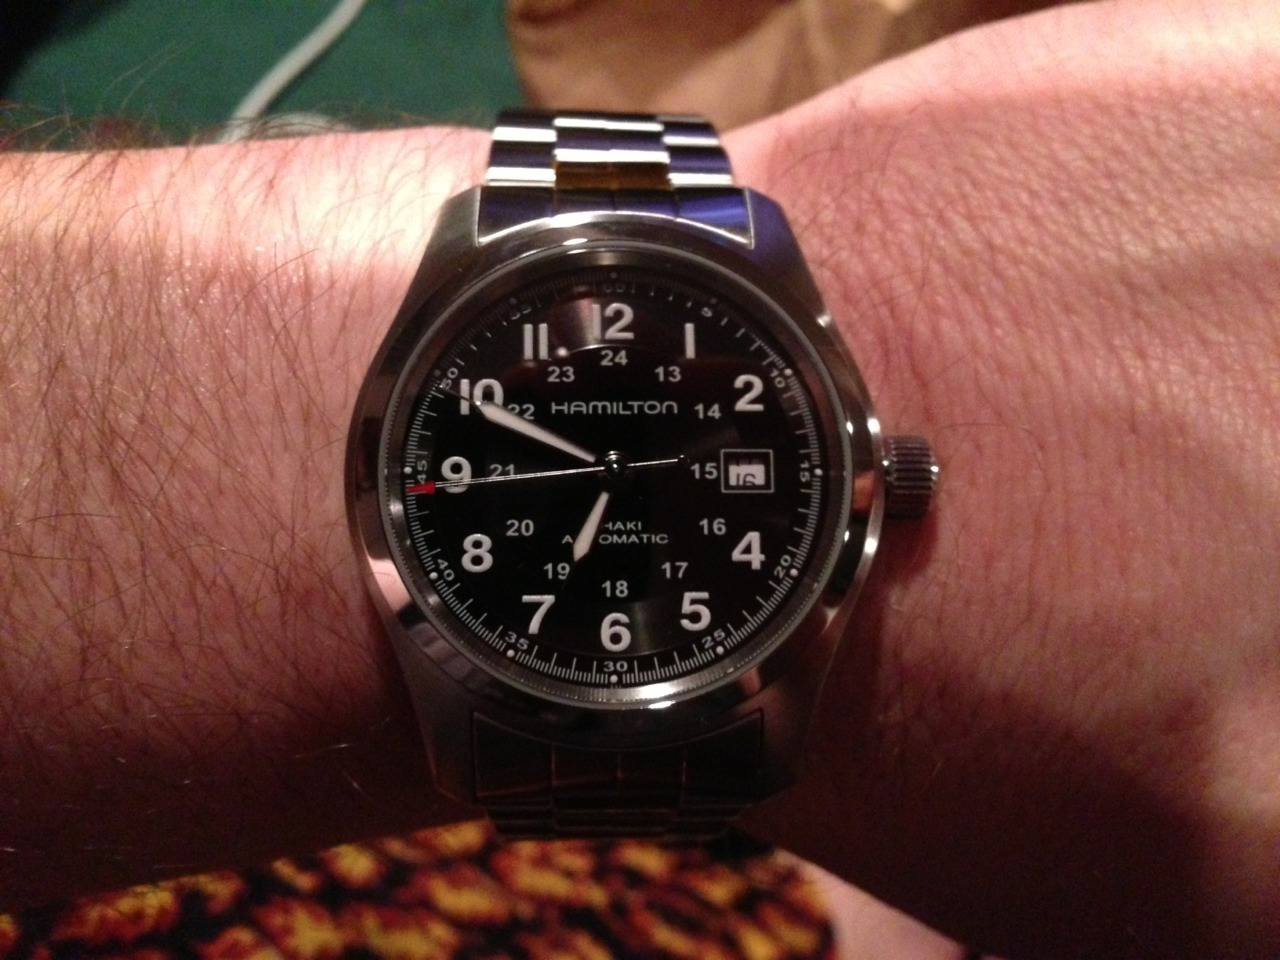 Hamilton watch my incredibly sexy wife bought me for my 40th b-day.